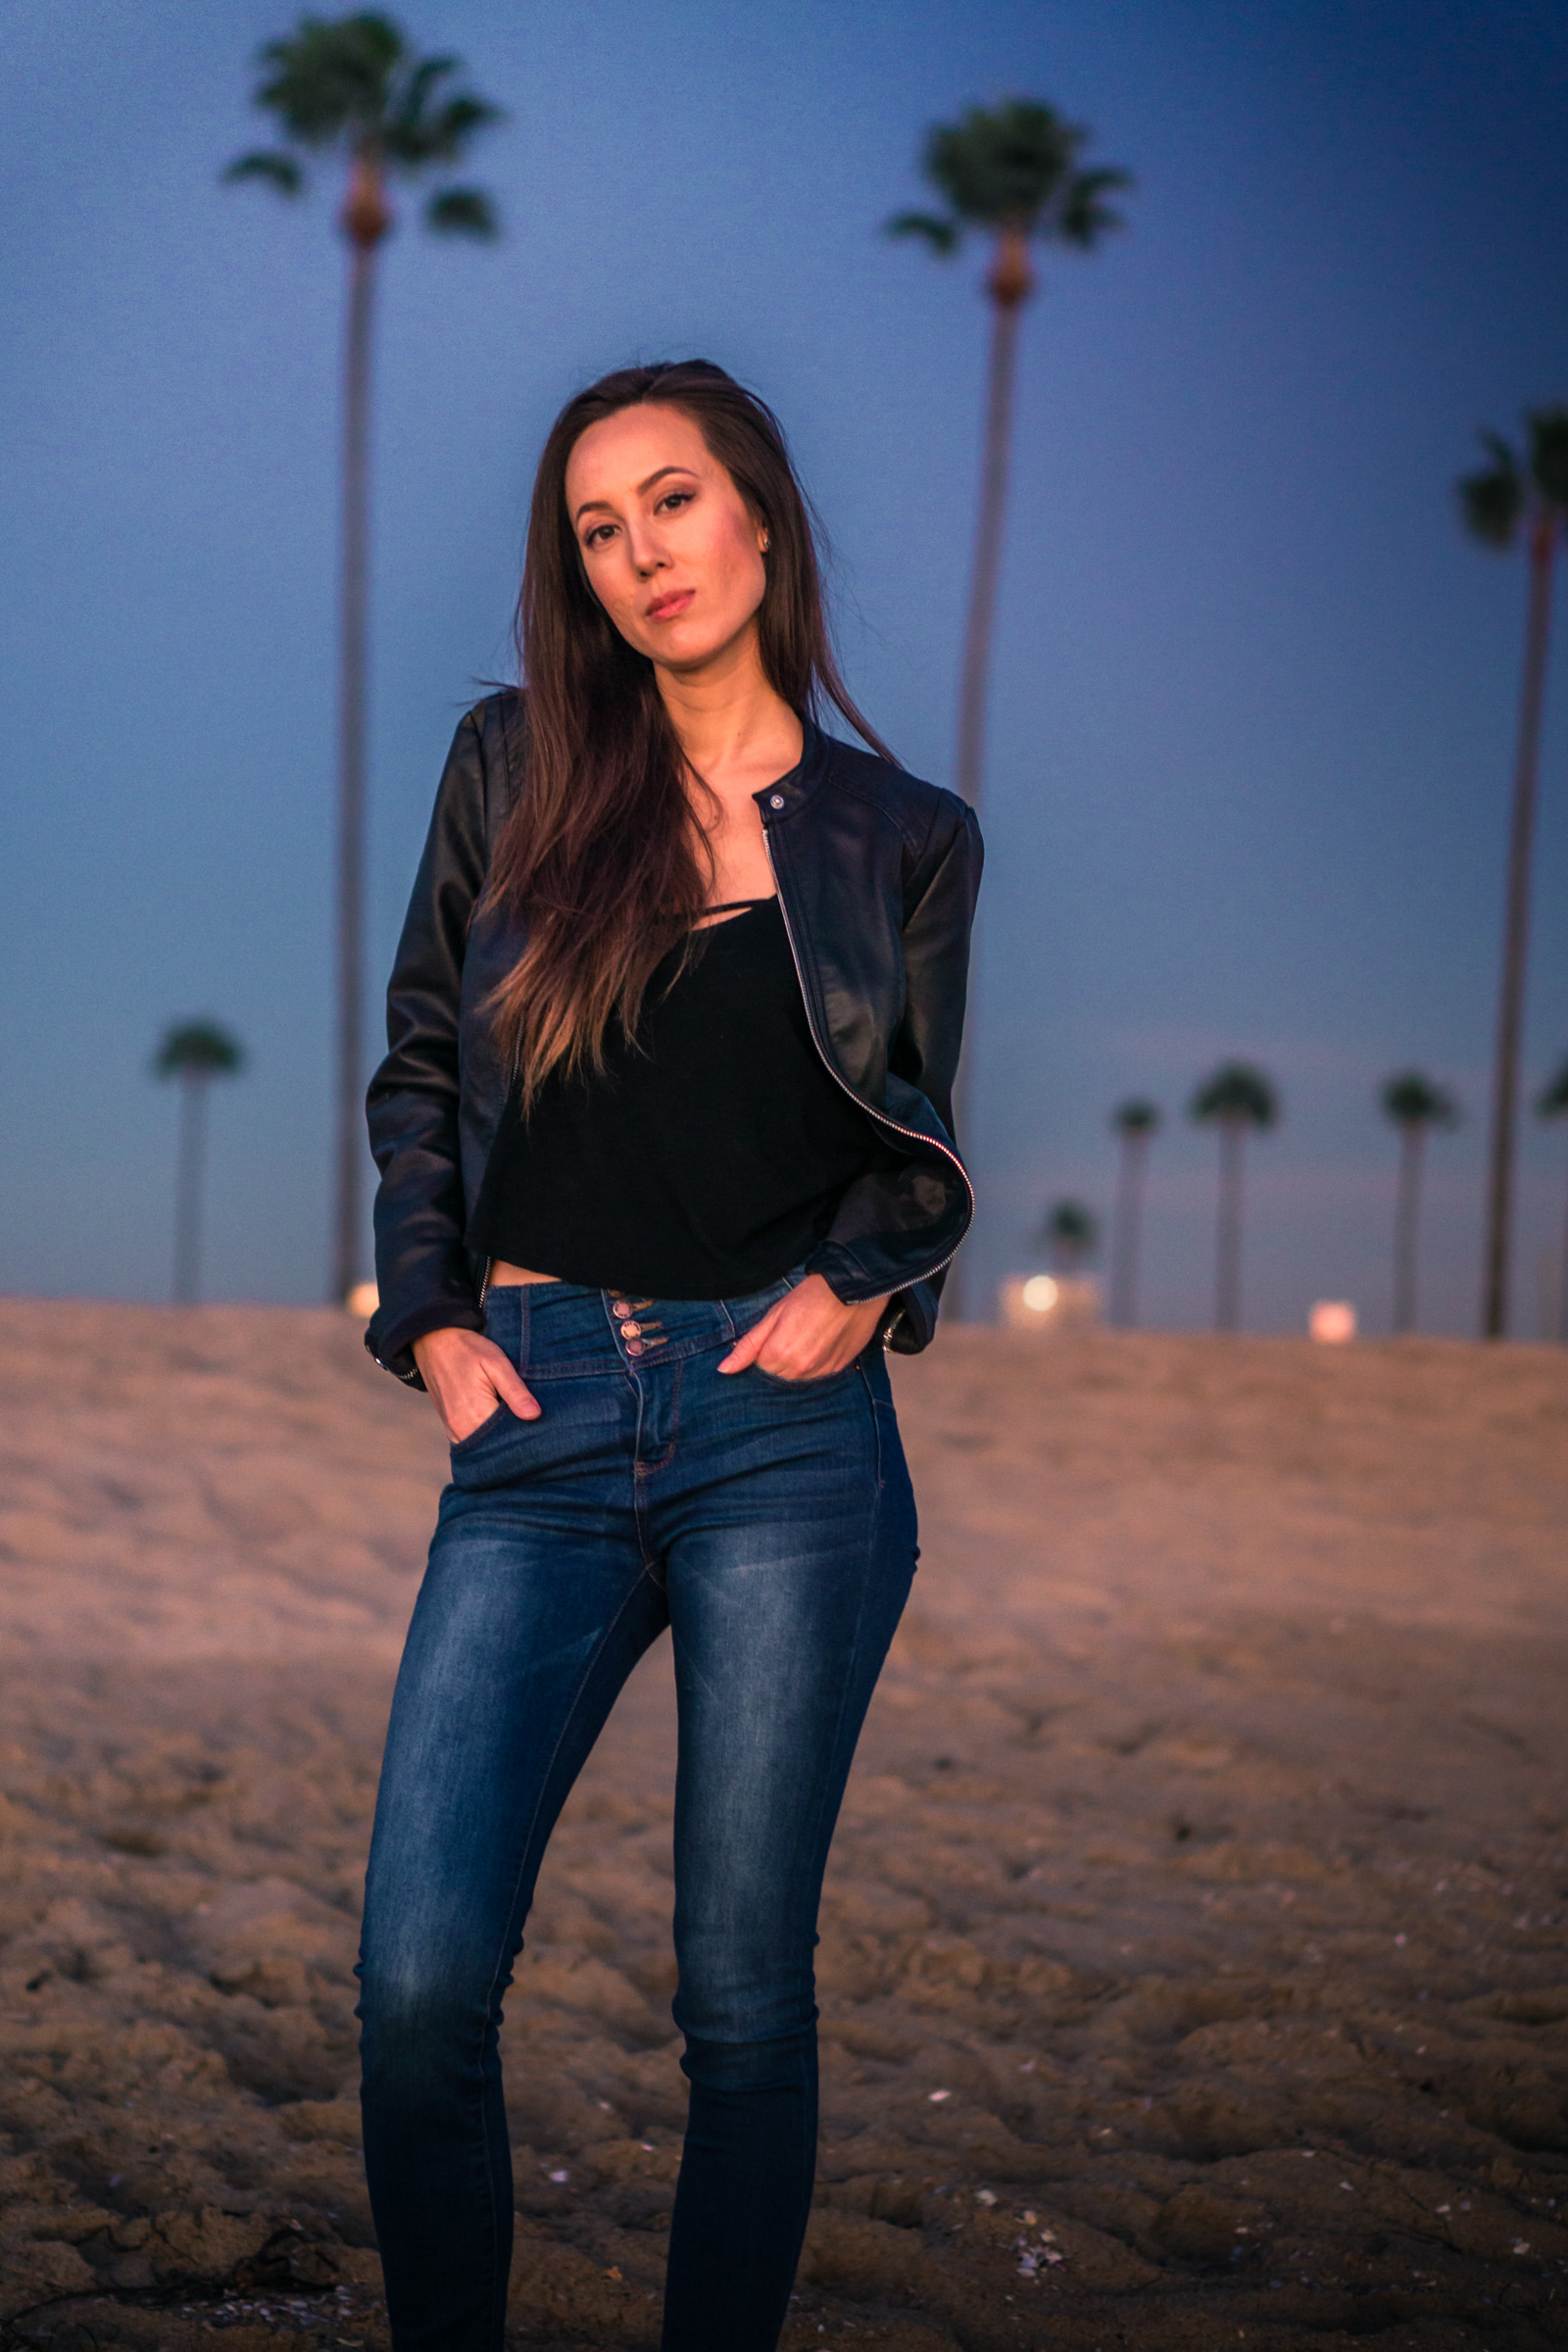 Natural light Fashion photoshoot of model posing in black leather jacket and blue jeans with blue sky and palm trees during Golden hour At Balboa Pier in Newport Beach